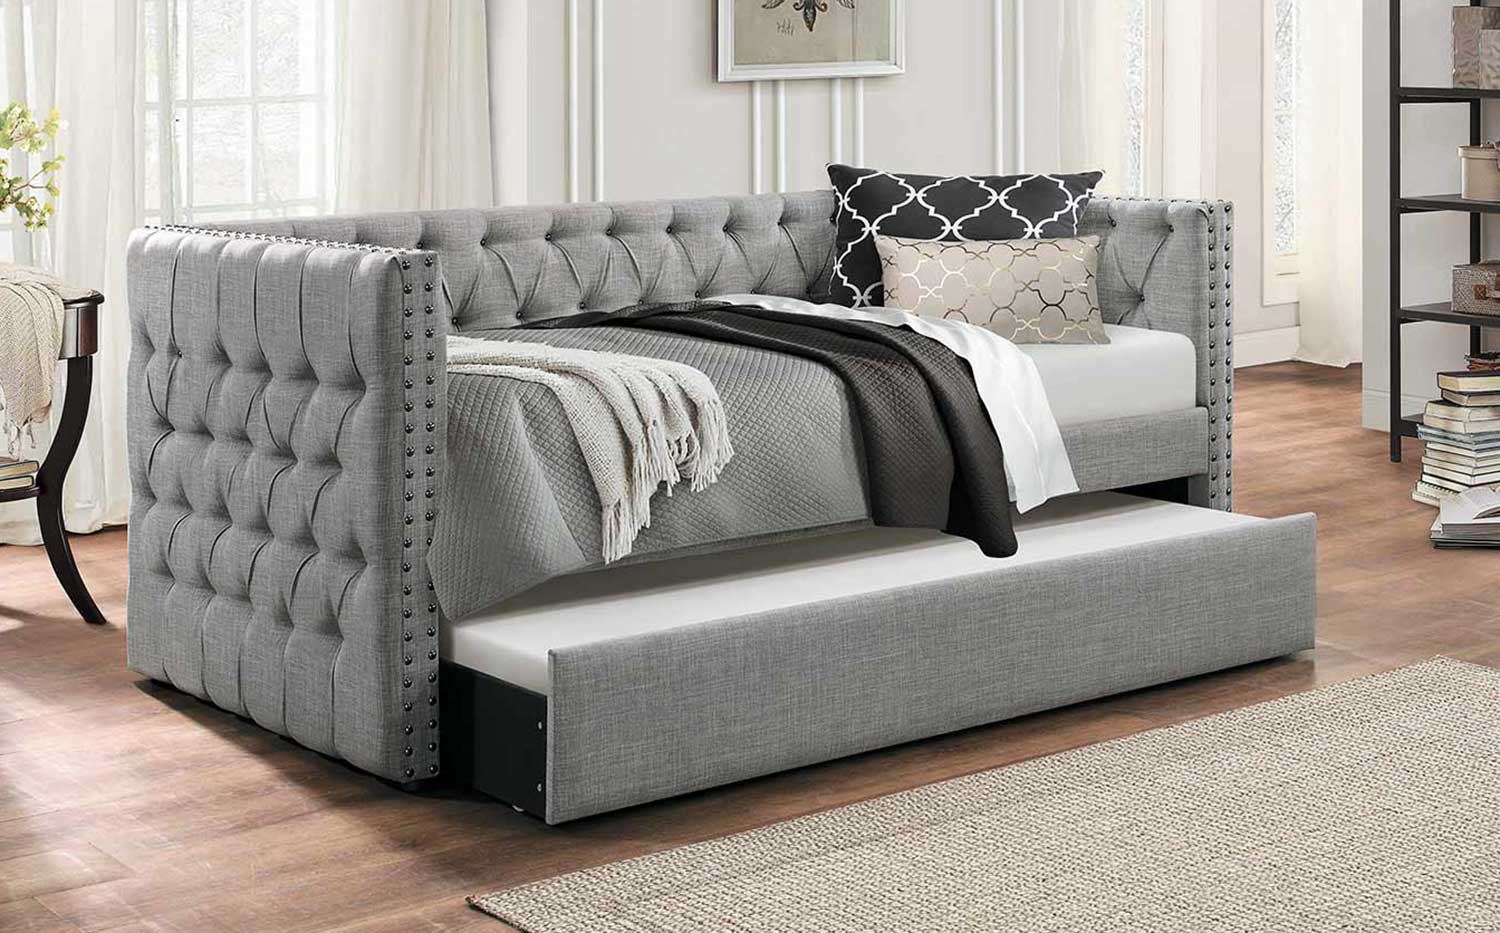 Homelegance Adalie Button Tufted Upholstered Daybed with Trundle - Gray